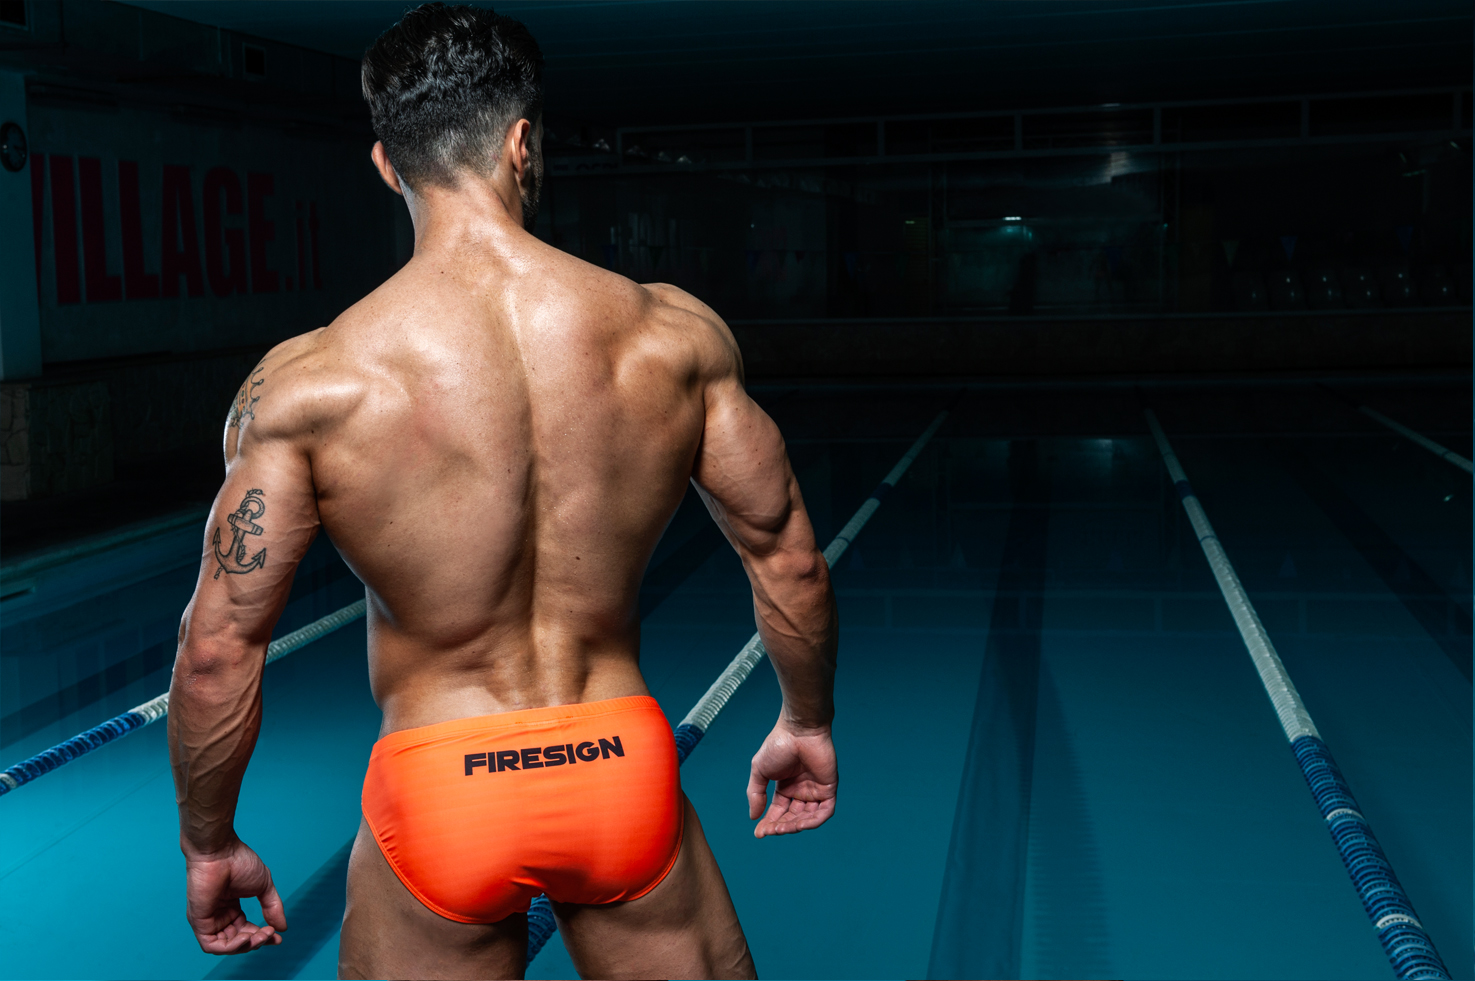 Firesign Swimwear Man